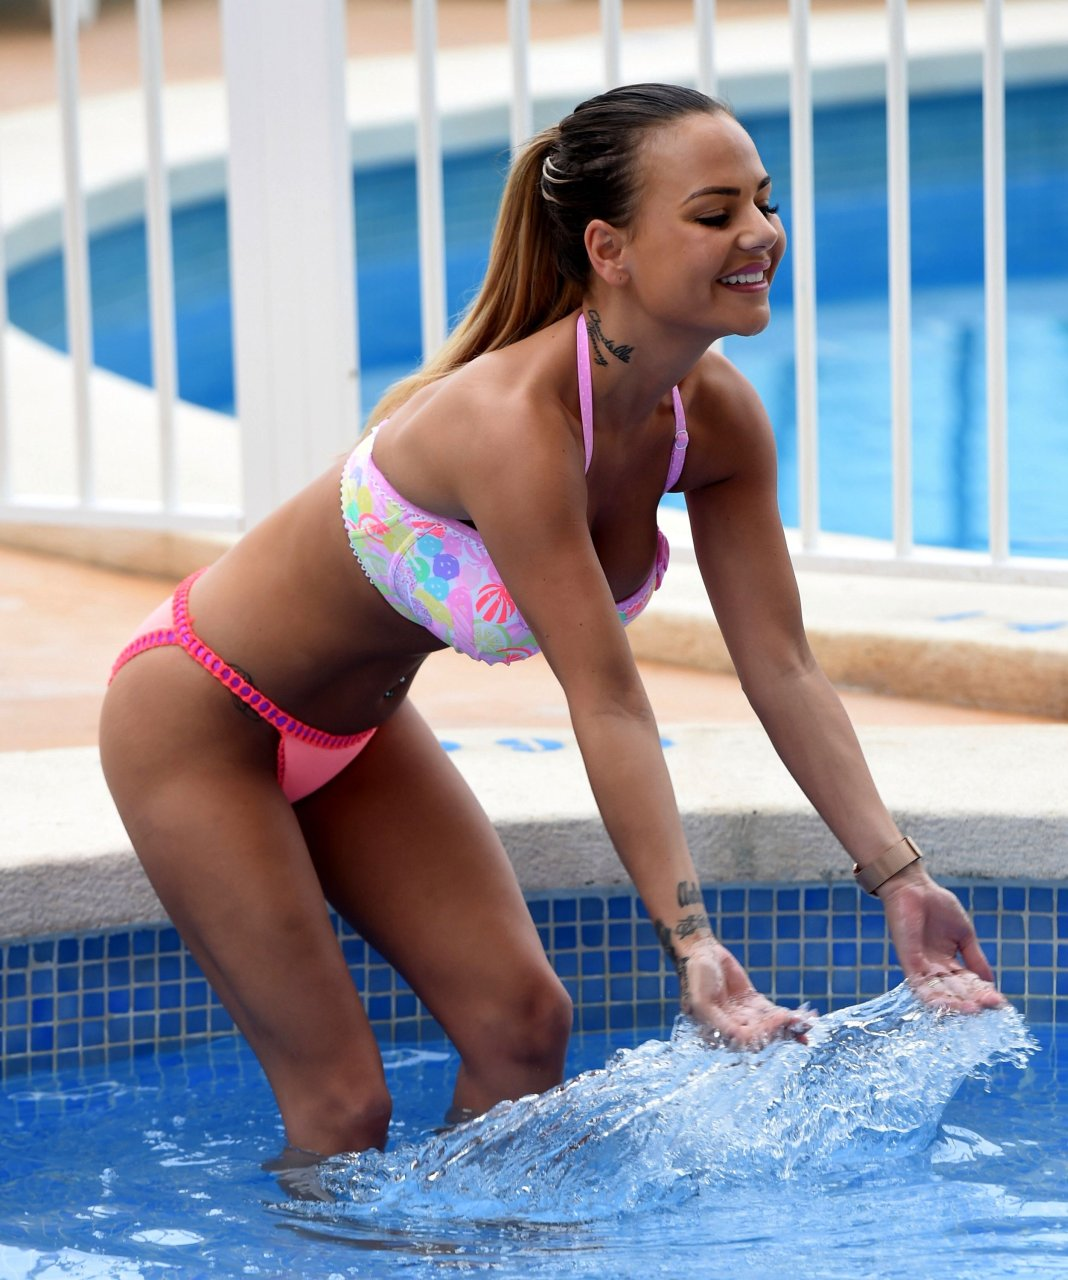 Do World Class Swimmers Get Reductions Or Are Their Small Breasts A Function Of Low Body Fat